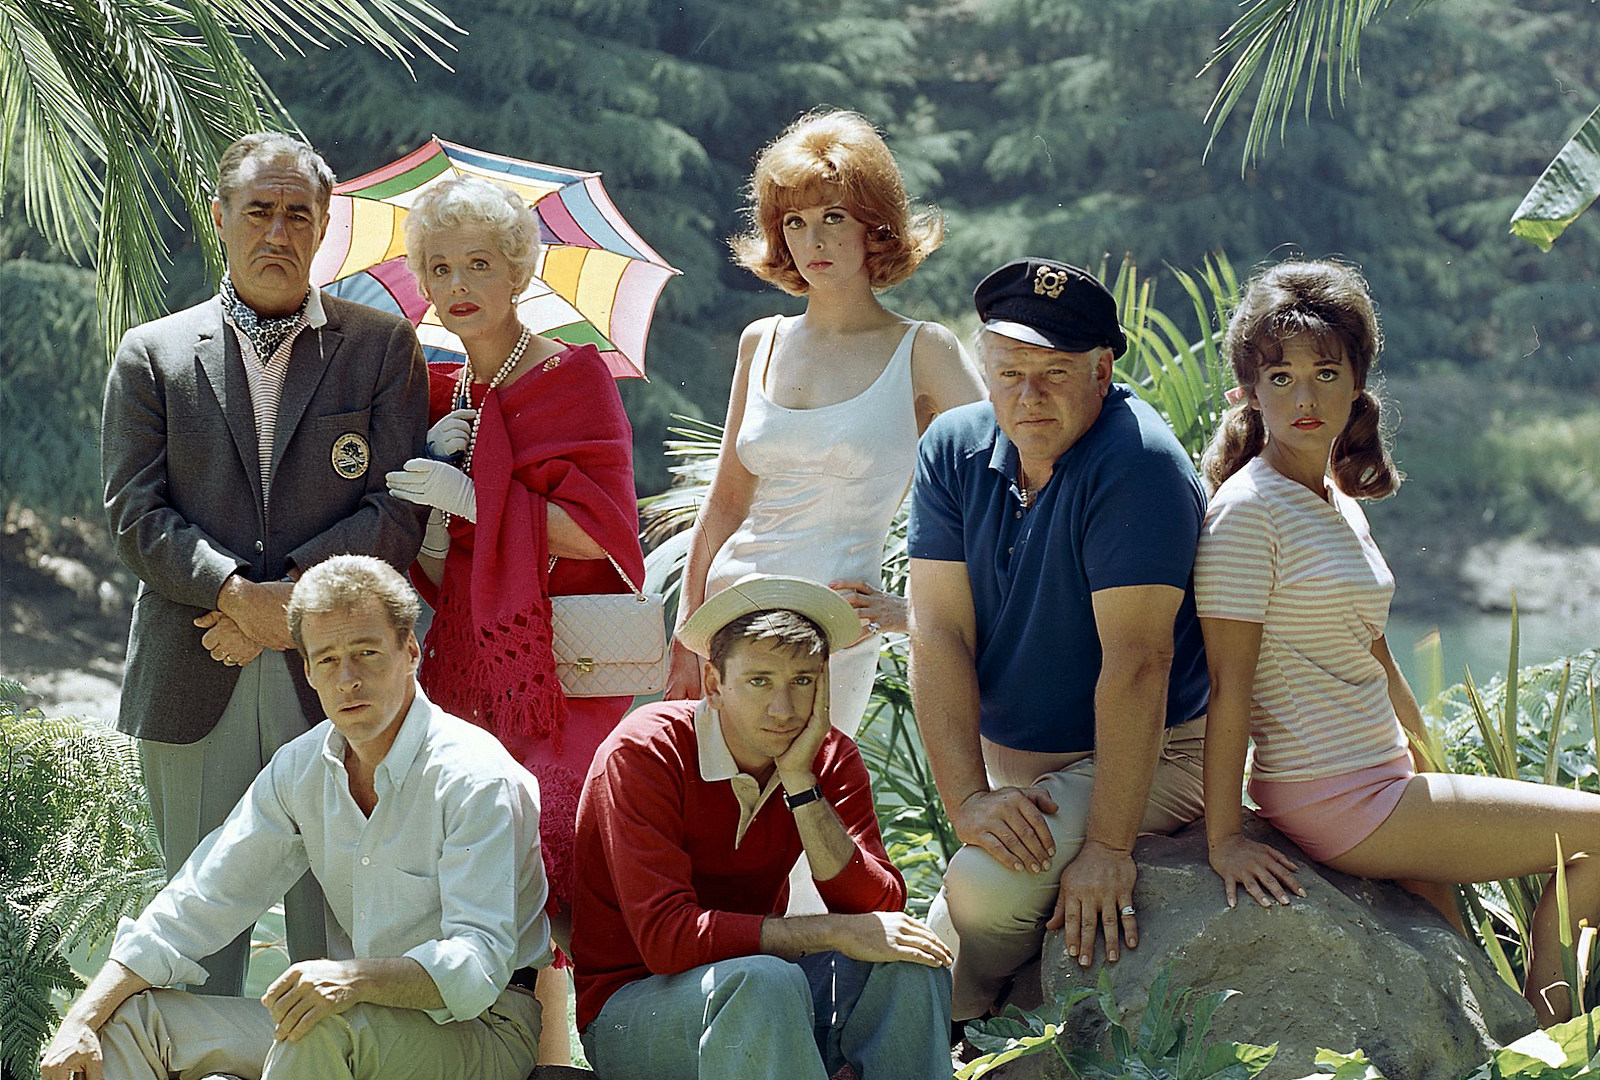 A 'Gilligan's Island' Horror Movie? It Almost Happened Twice